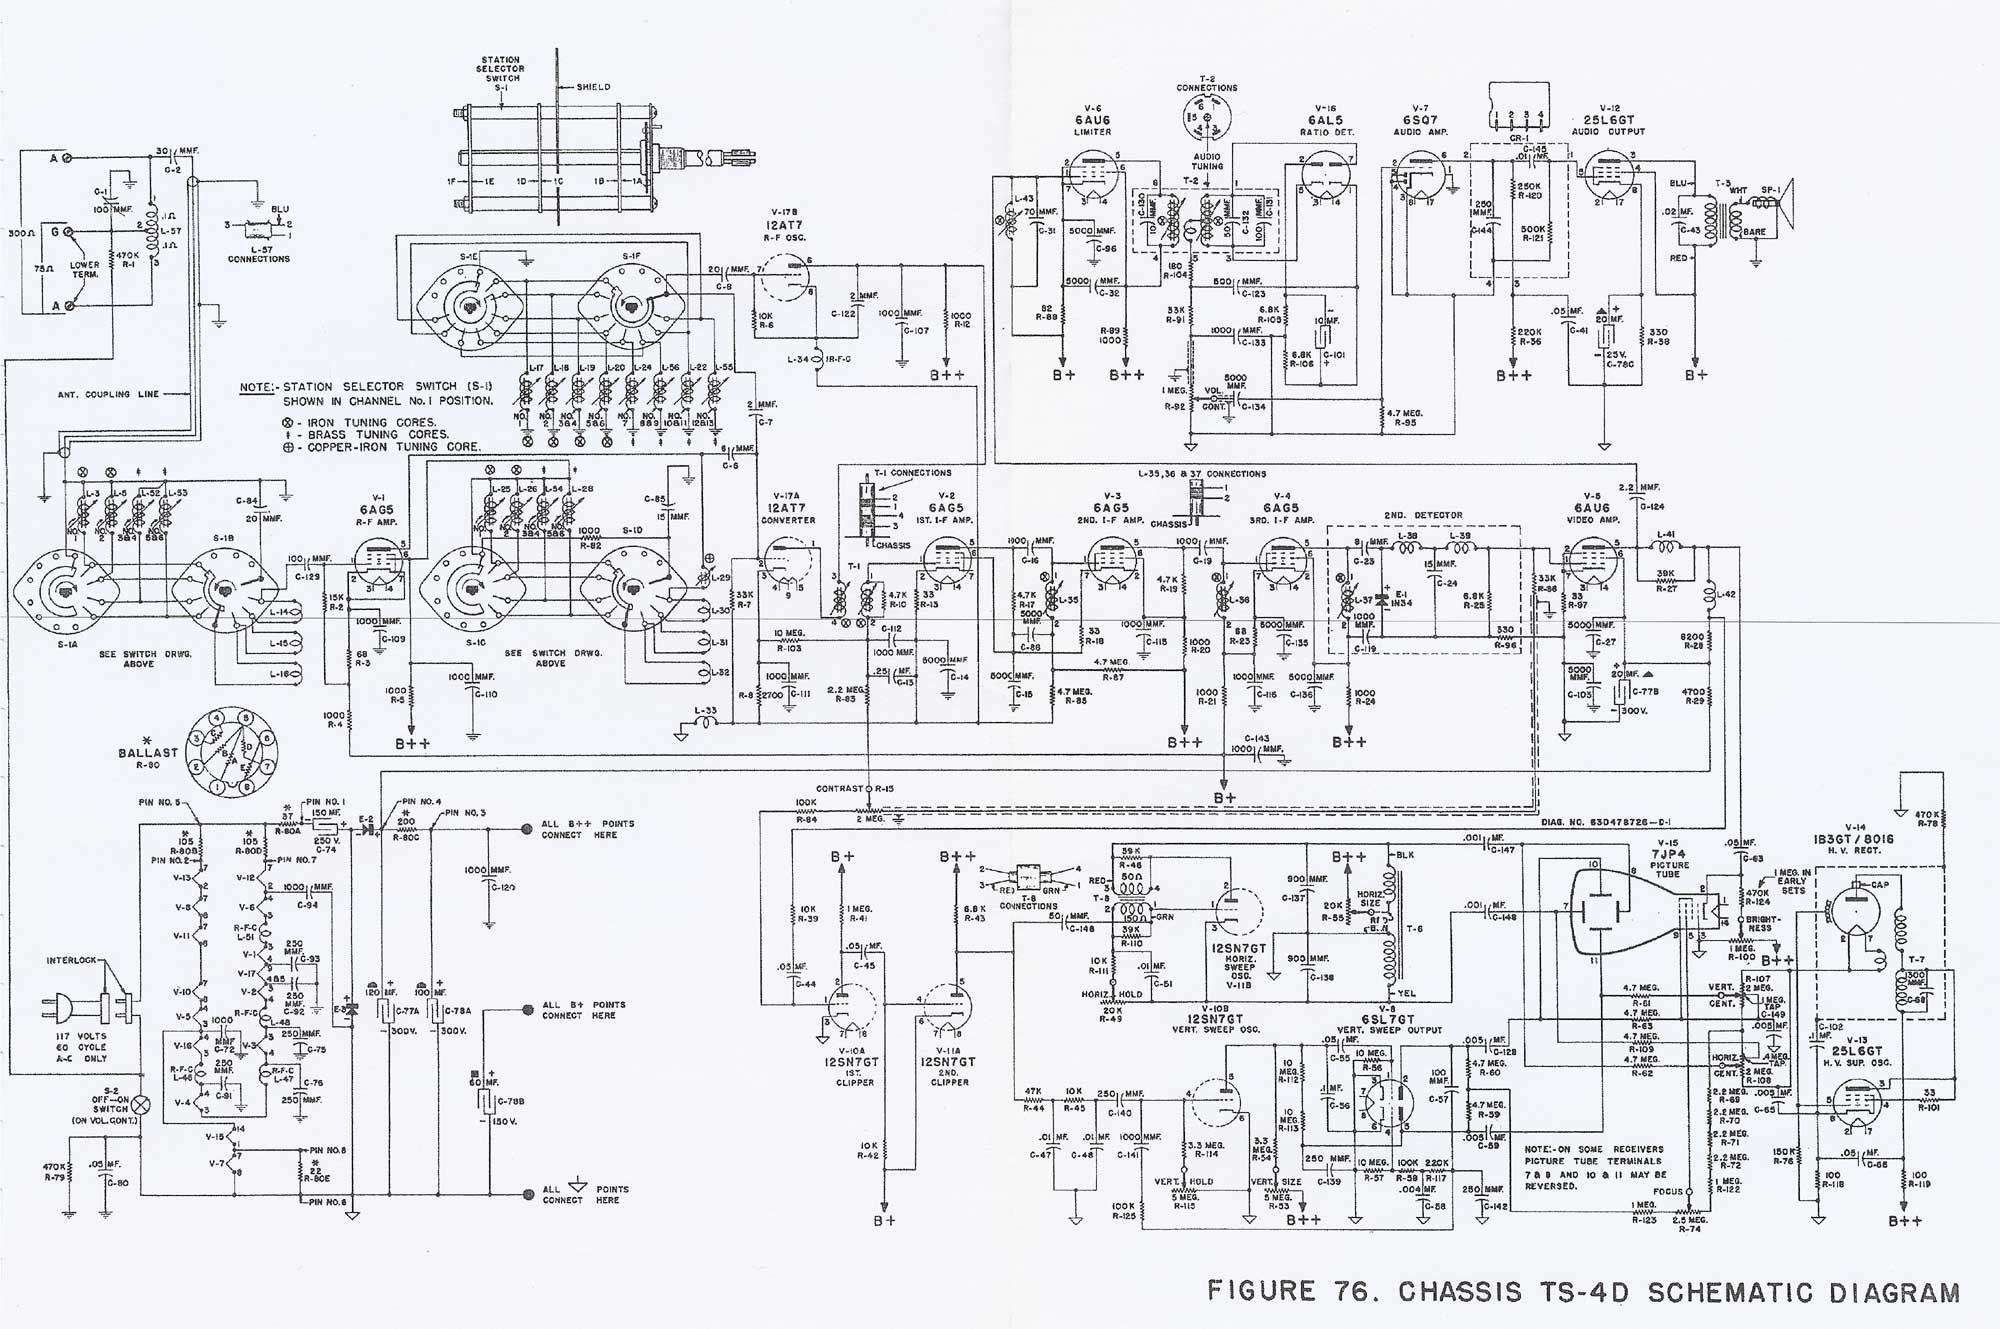 r 390 schematic  u2013 the wiring diagram  u2013 readingrat net